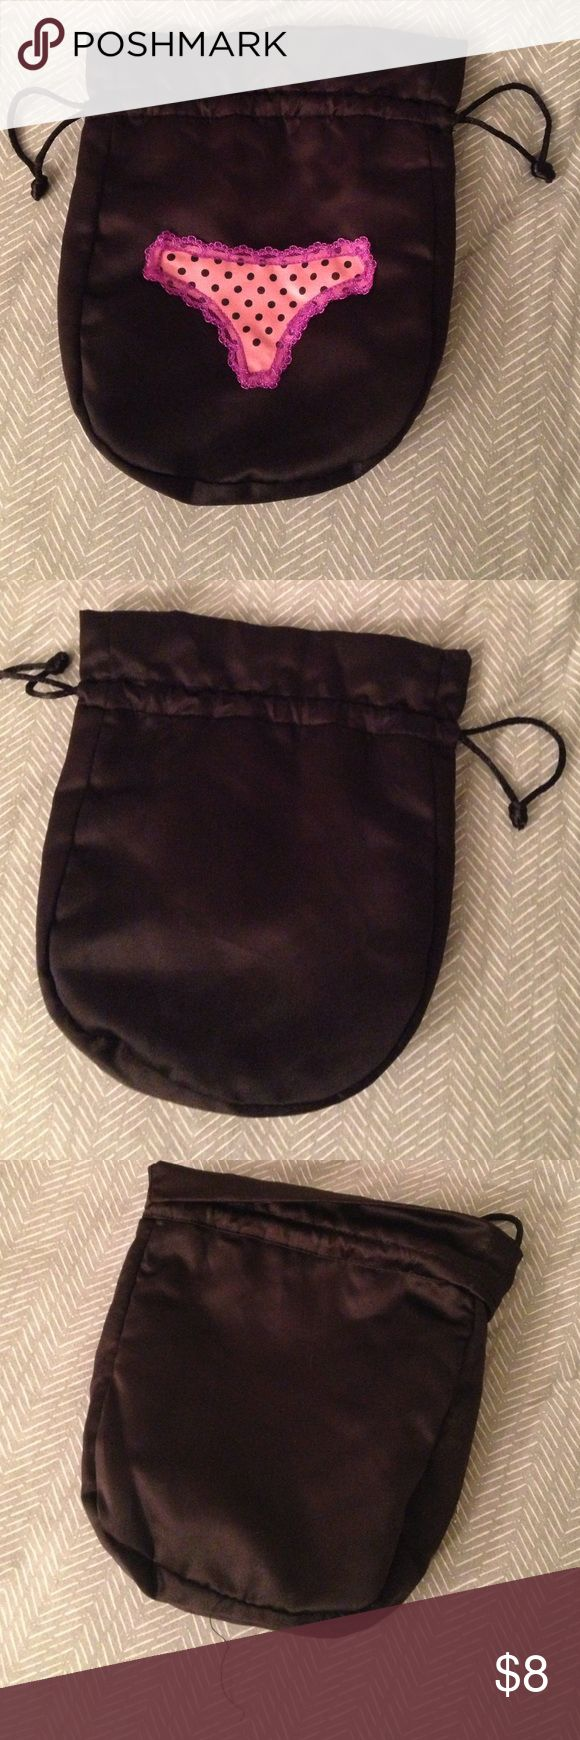 Victoria's Secret Drawstring Panty Bag Satin drawstring panty pouch. Great condition. Only used for jewelry storage. Victoria's Secret Other